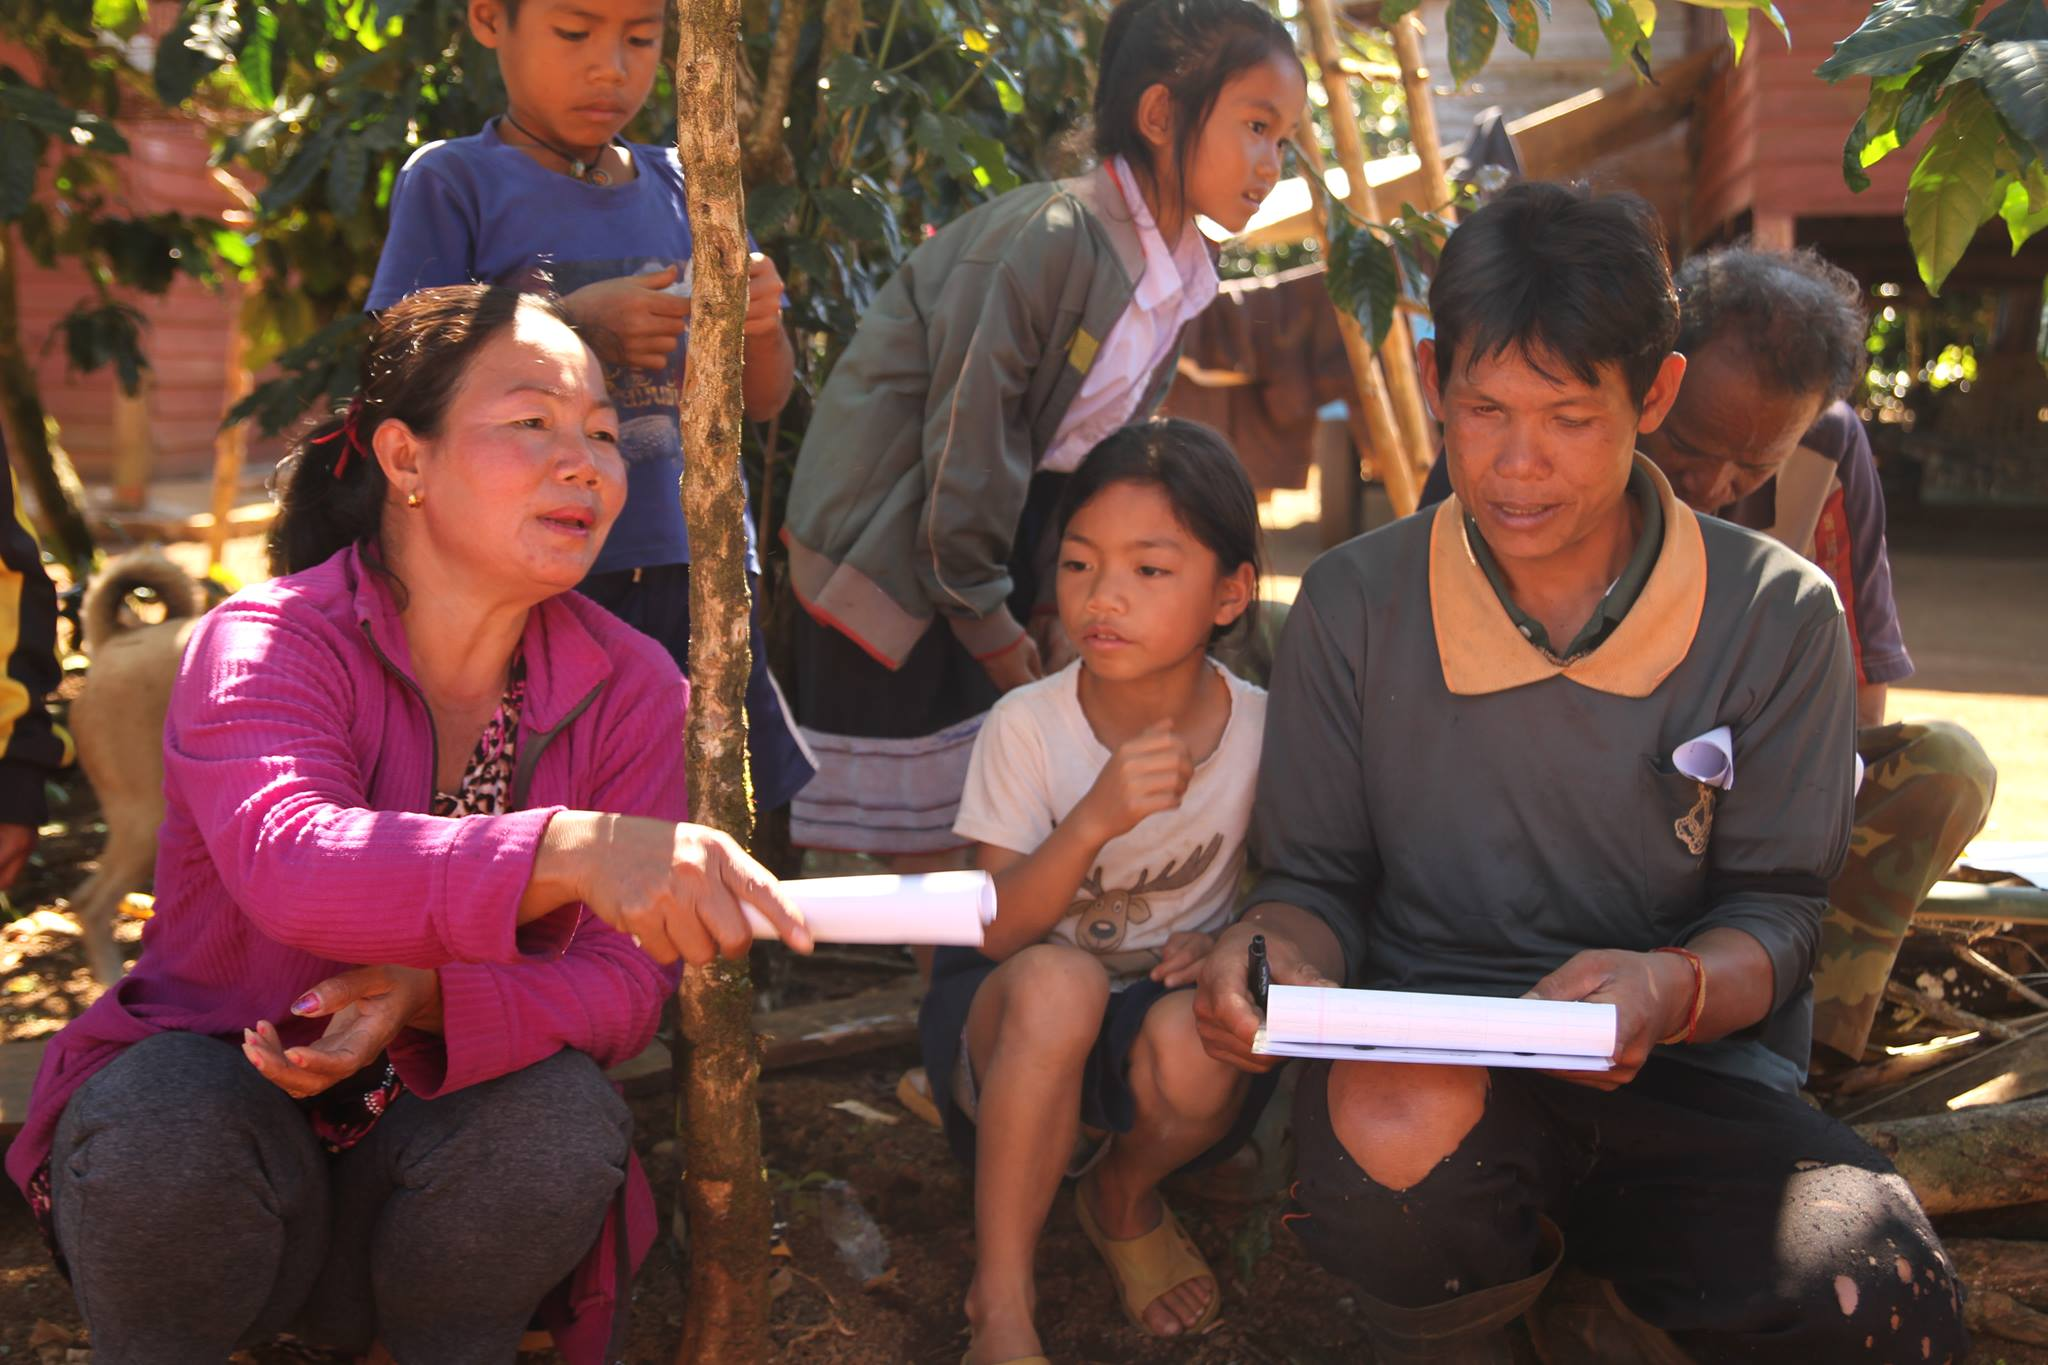 Phoumako village chief, Pheng,voicing her opinion about the traceability program with her son and community children alongside.